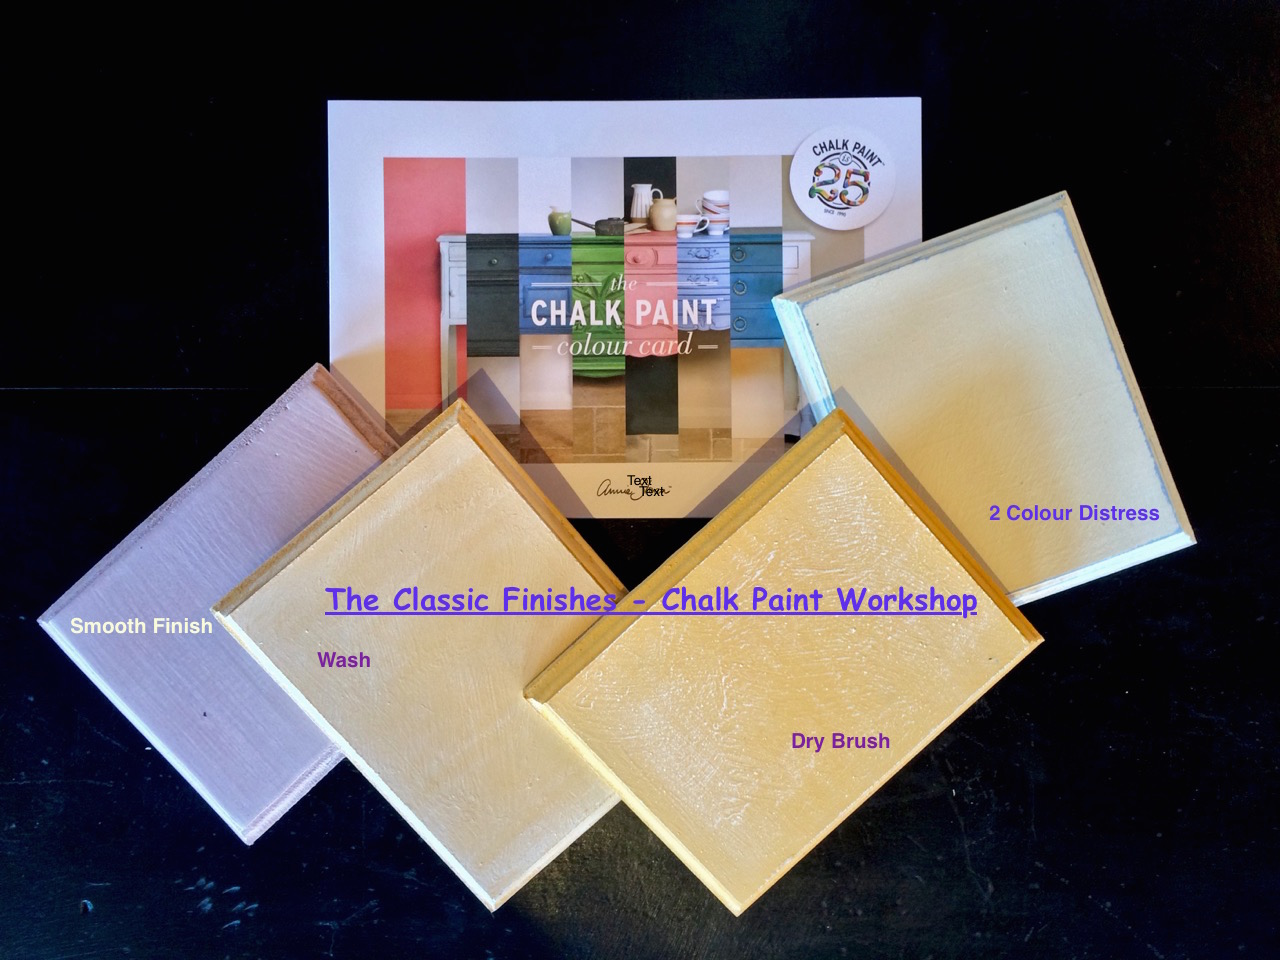 The Classic Finishes - Chalk Paint Workshop